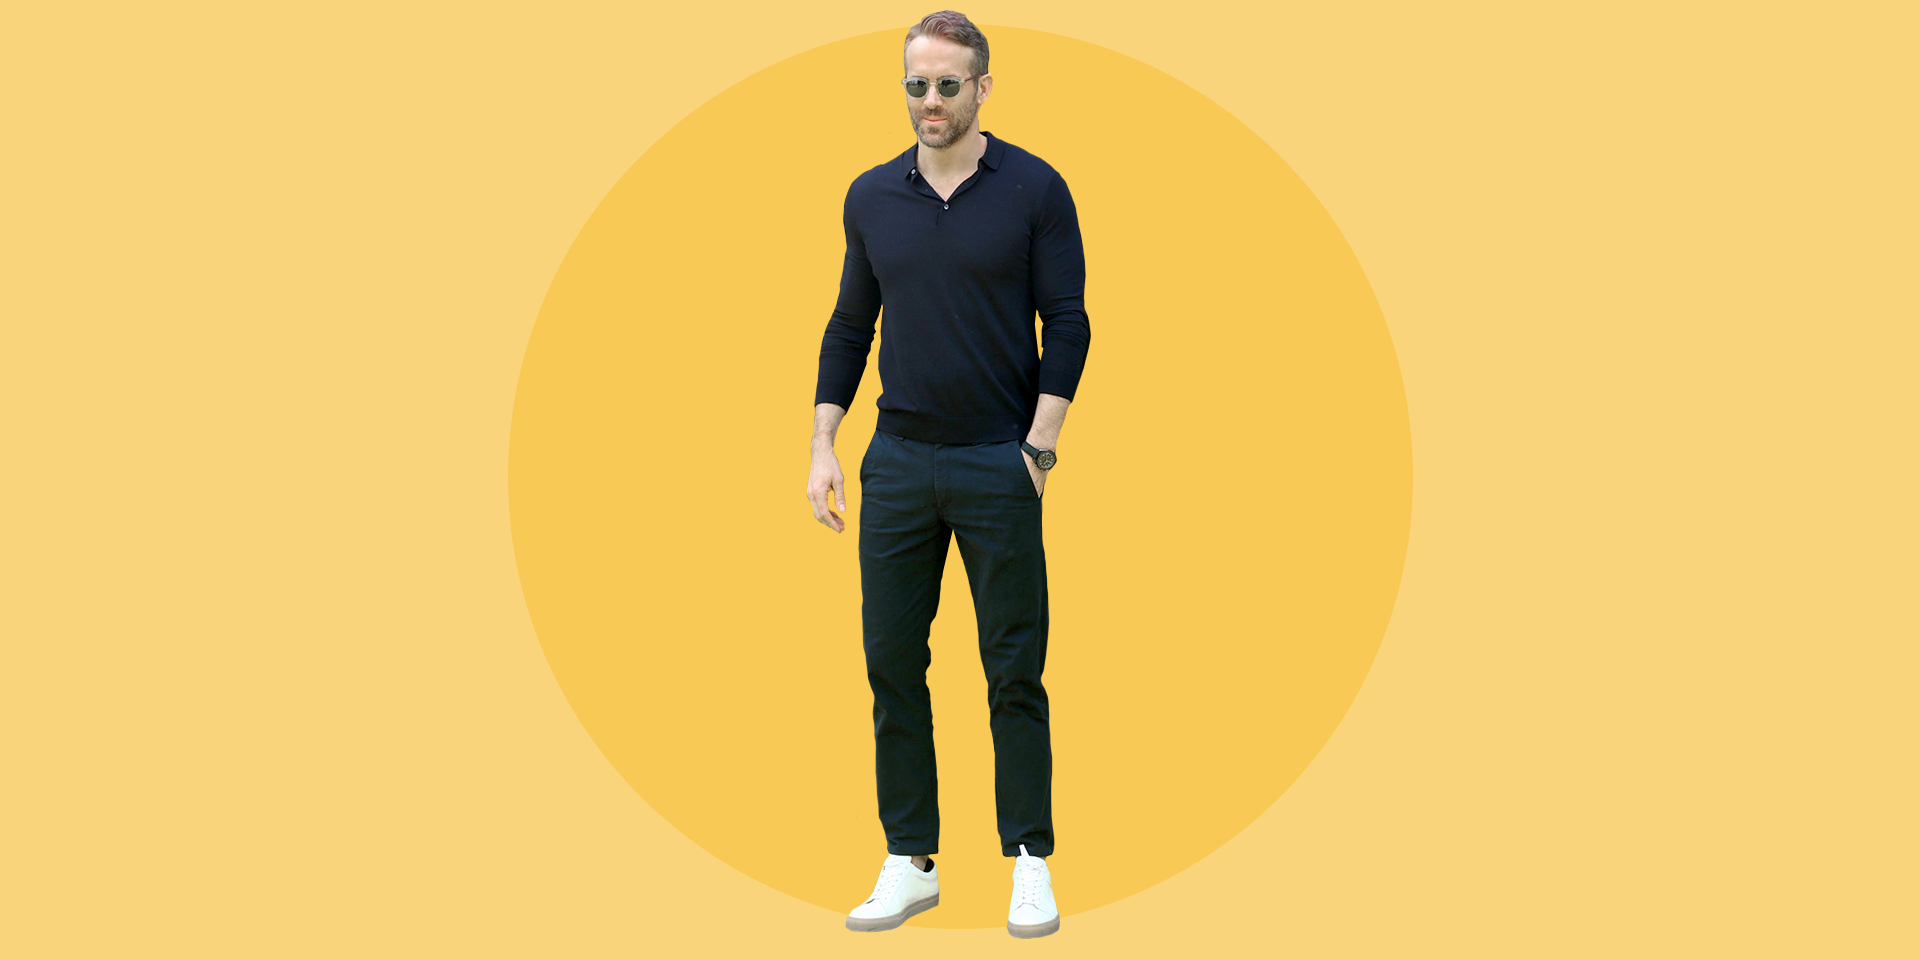 Here's Where to Get Ryan Reynolds' Outfit-Making Sneakers